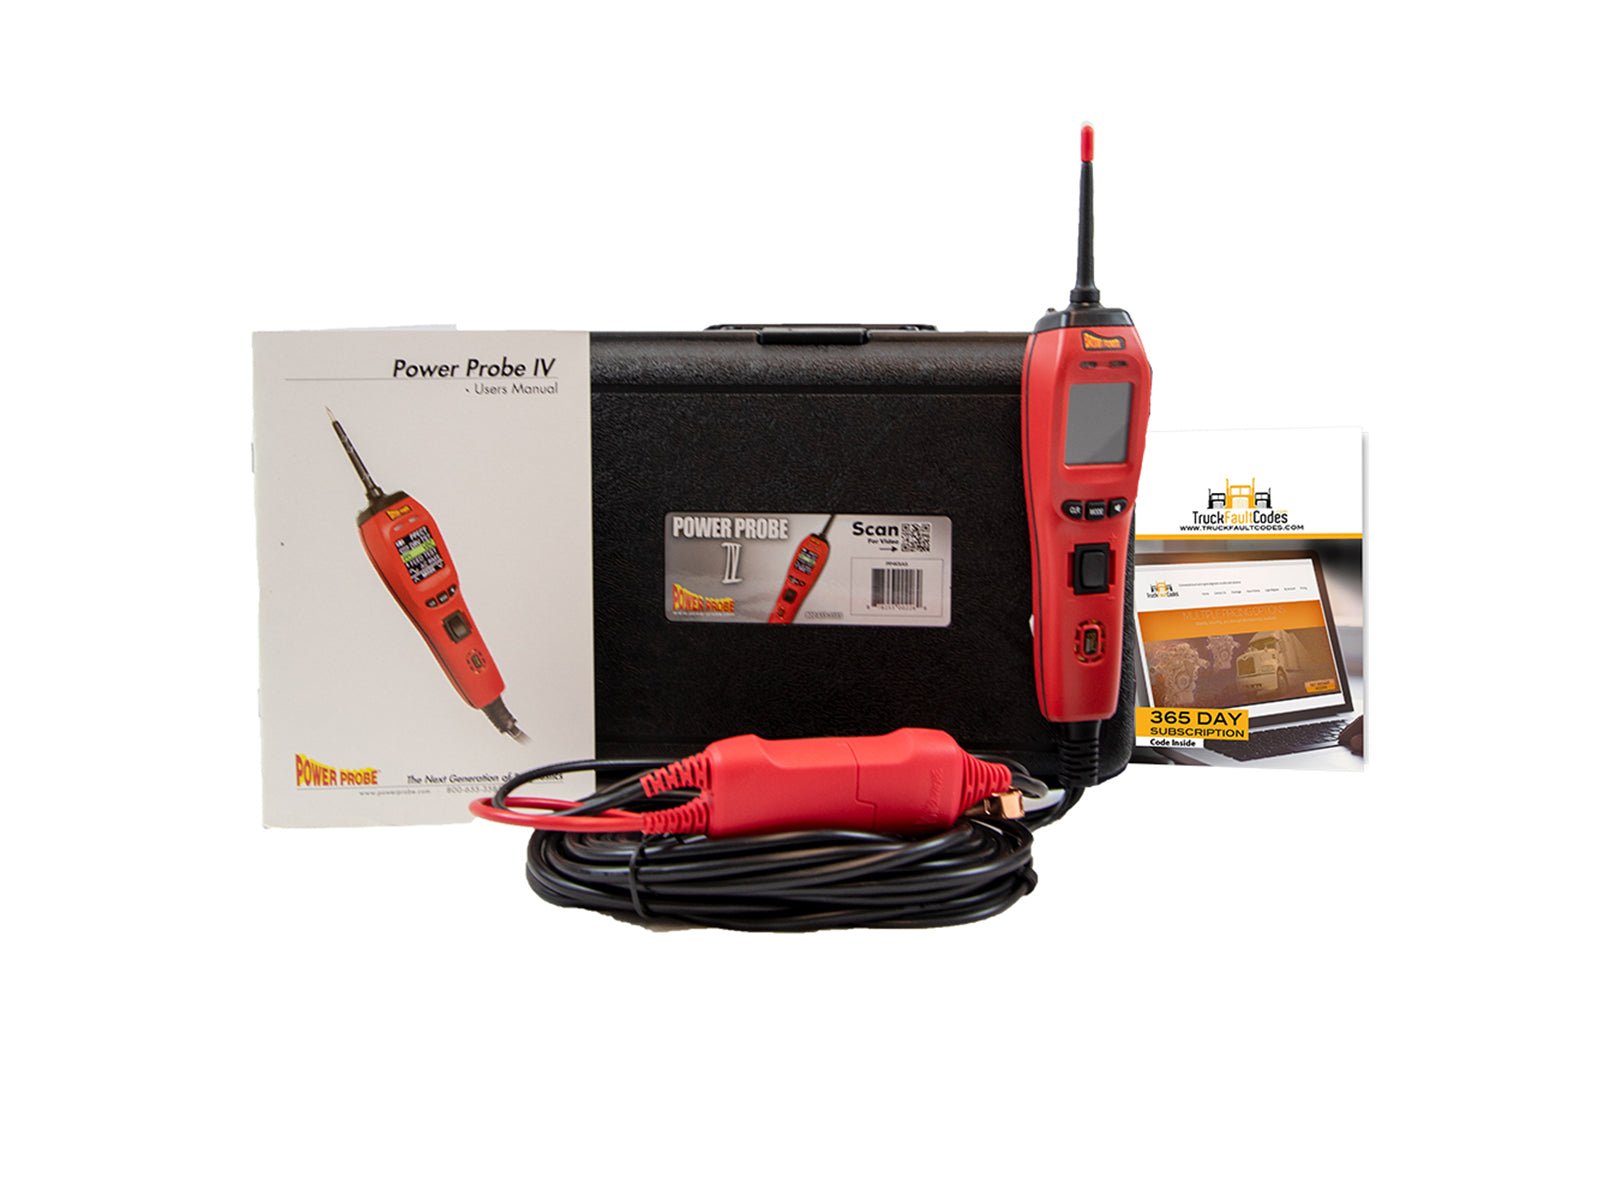 Power Probe IV Red & Accessories Bundled with Truck Fault Codes